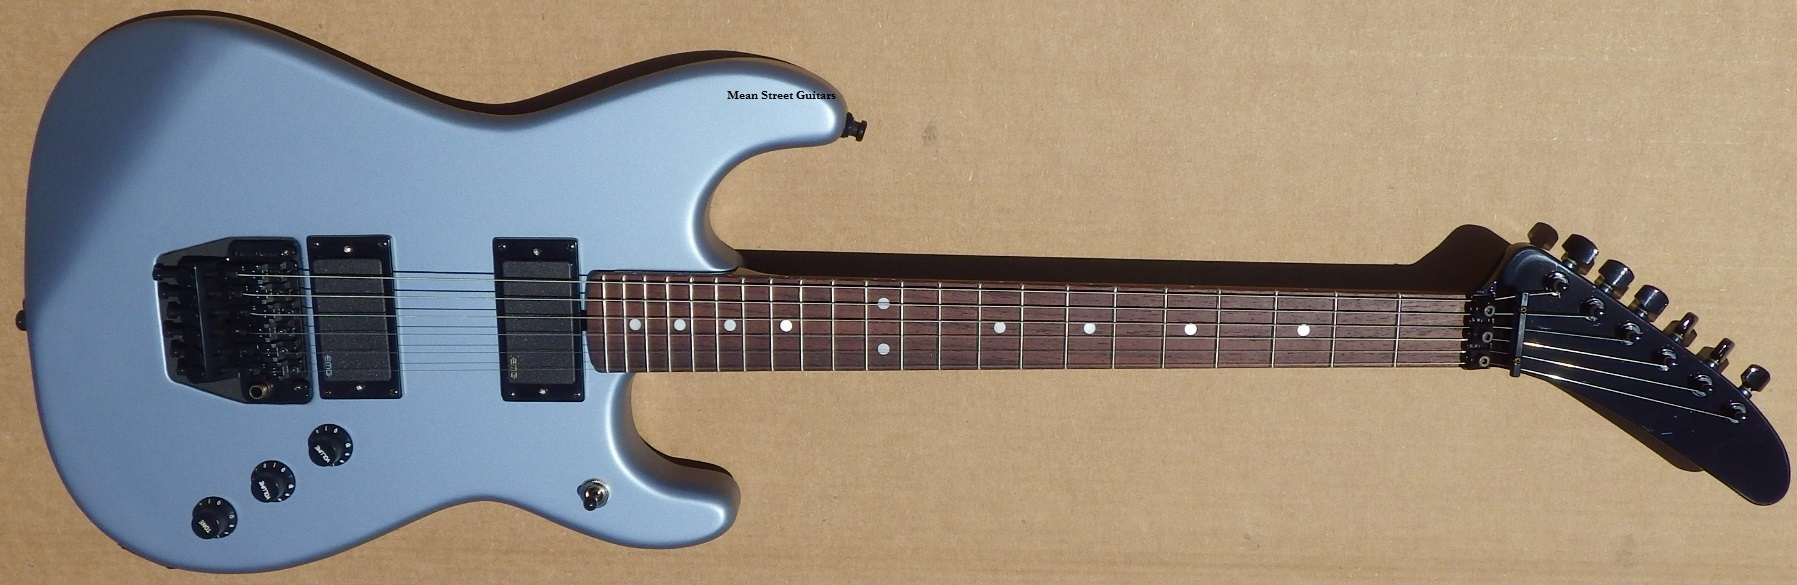 Mean Street Guitars ATH Tour Model no graphic Ryan G pic 1.jpg